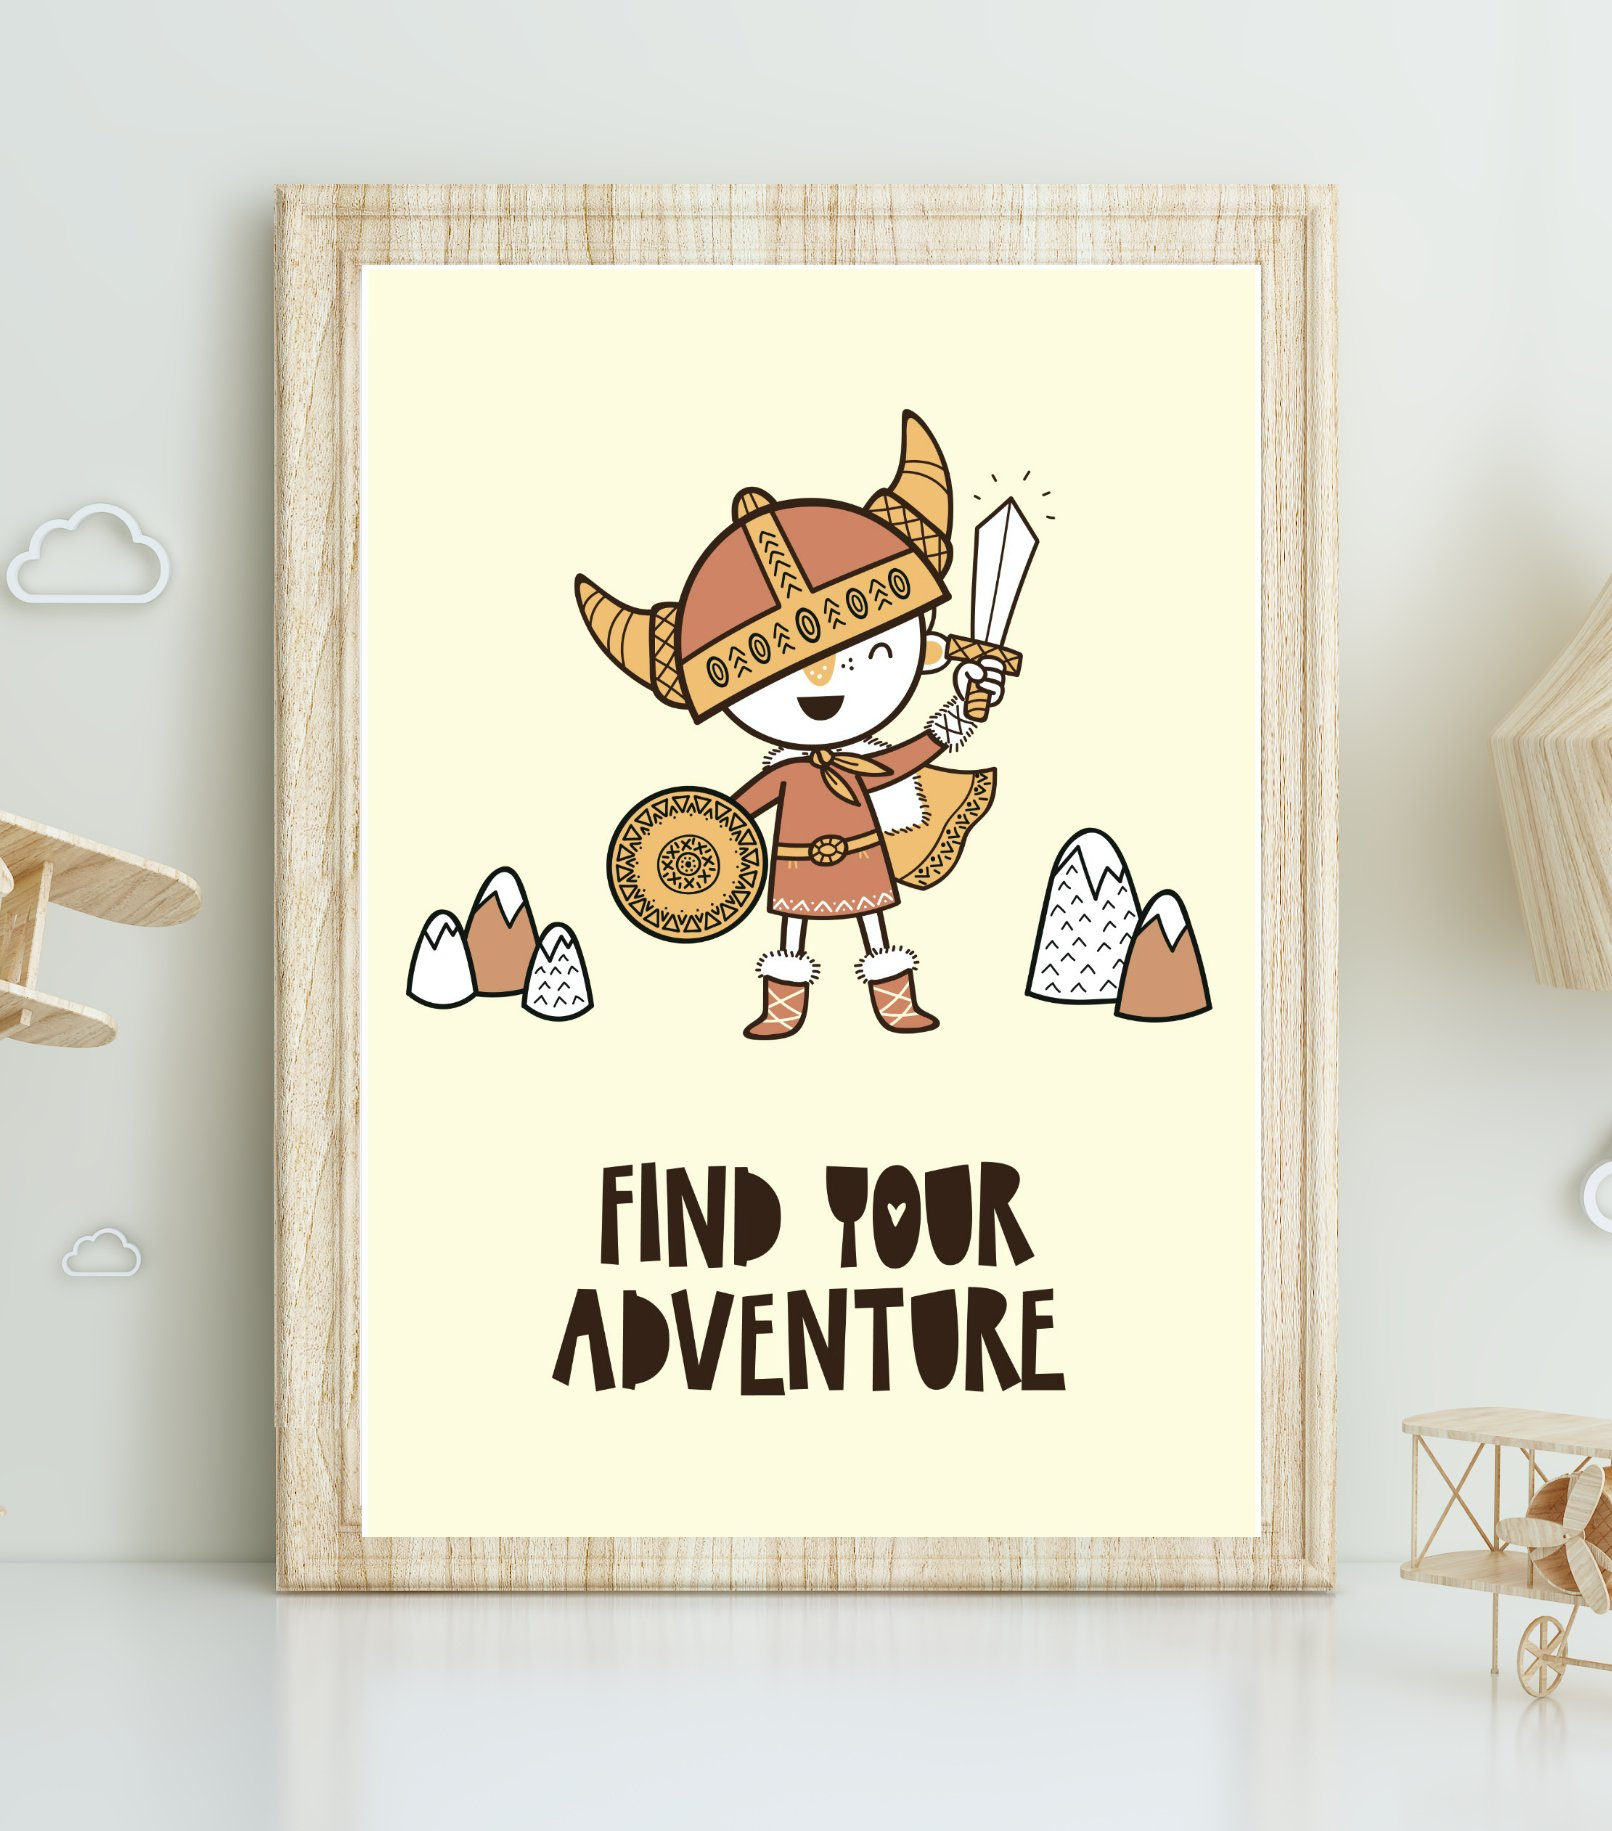 Find your adventure